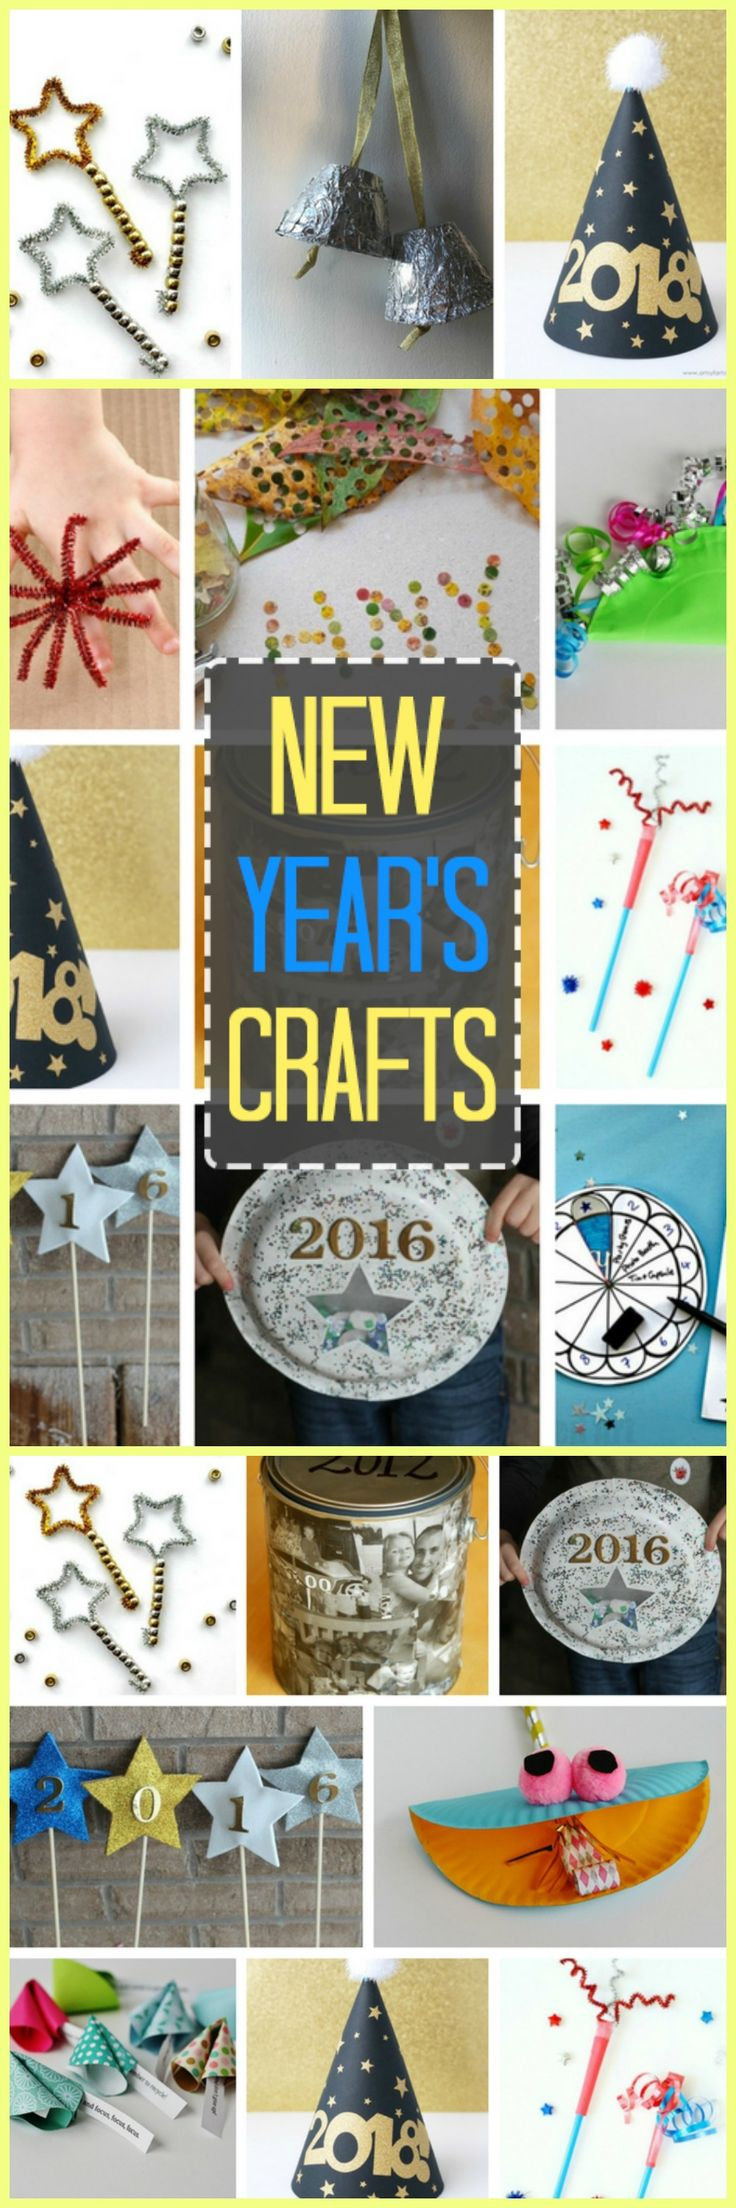 A fun way to build up excitement is to make some homemade New Year's crafts and talk about your favorite parts of the past year and what you're most looking forward to for the next year.